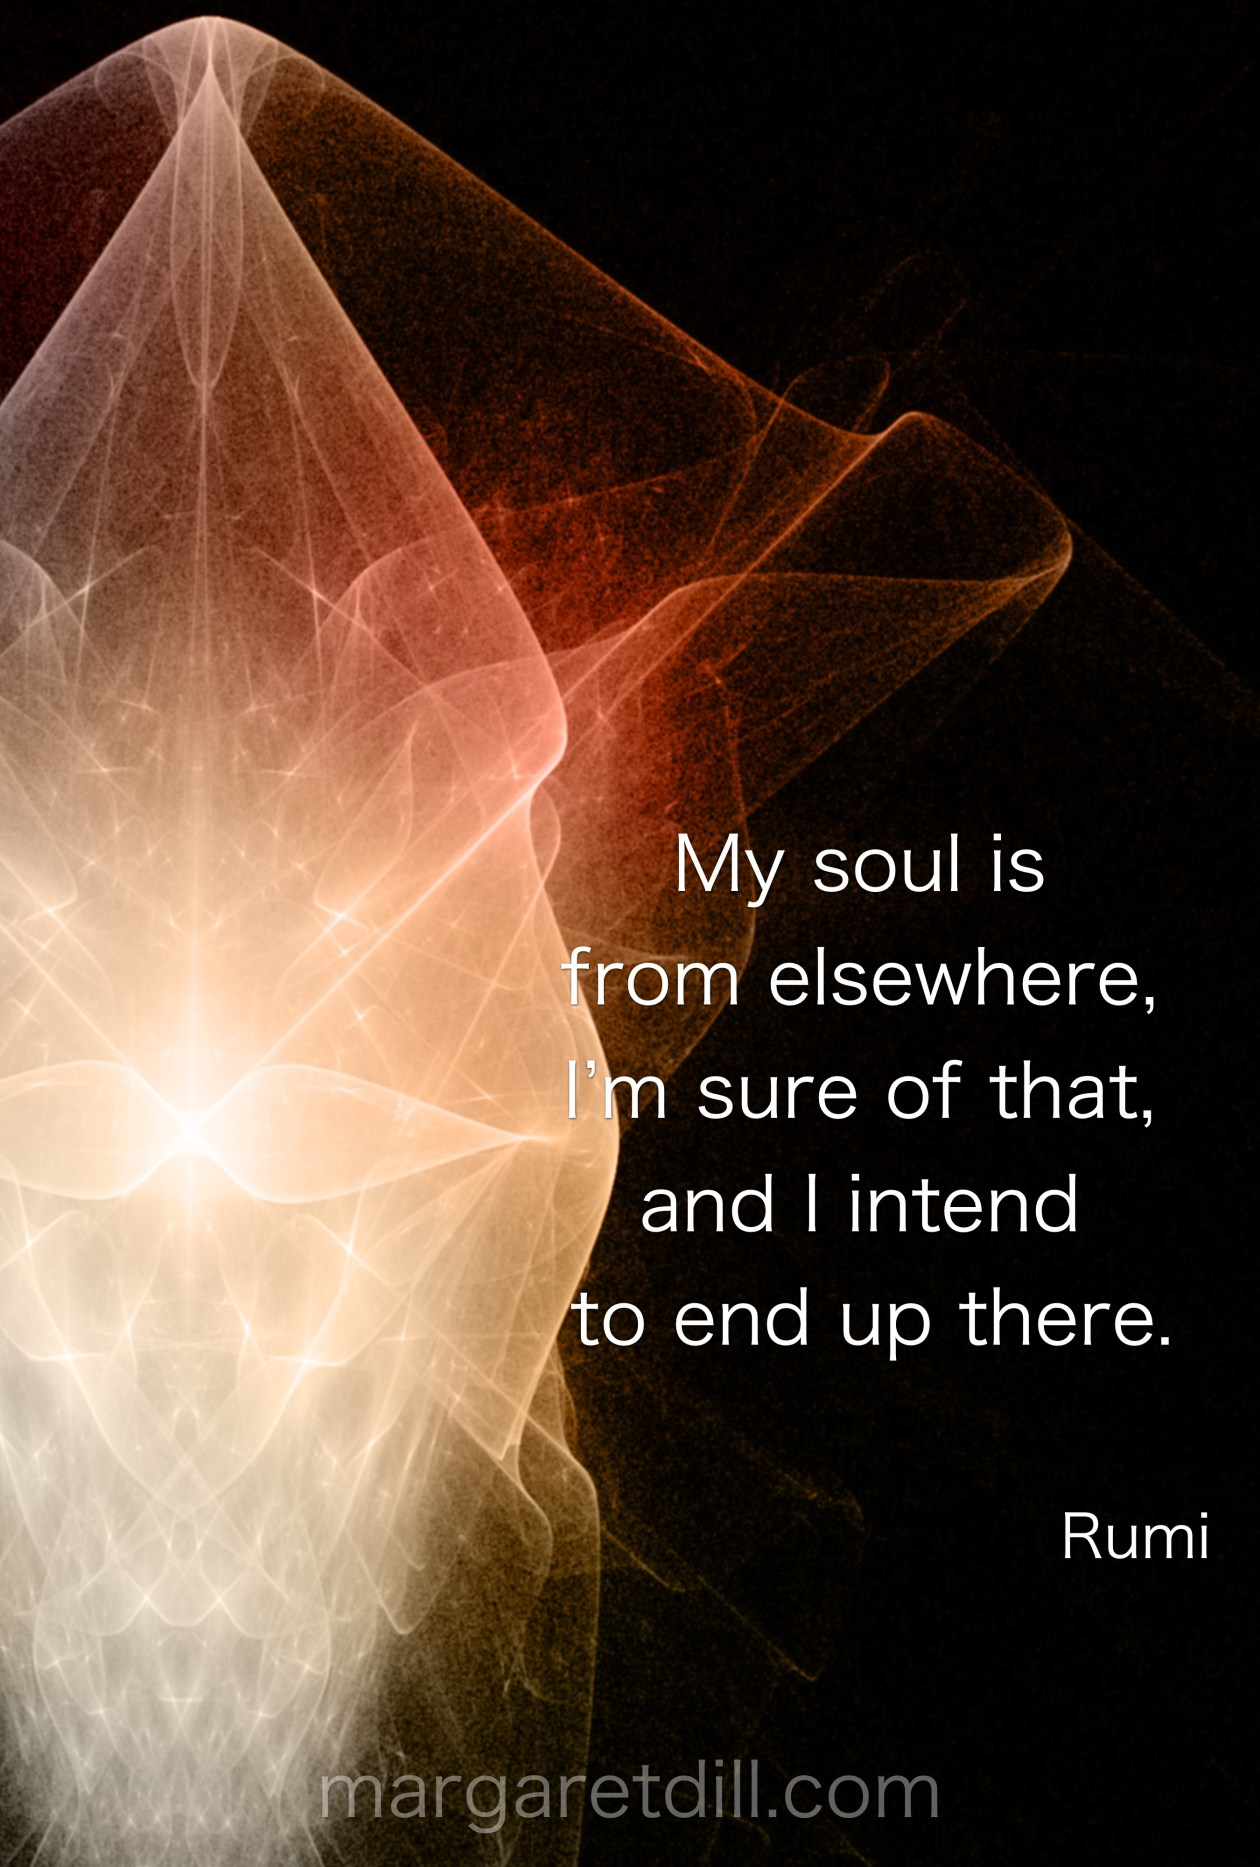 My soul is from elsewhere-rumi quote #wordstoliveby #mindfulness #meditation #Spiritualawakening #wordsofwisdom #quotations #rumi #rumiquotes